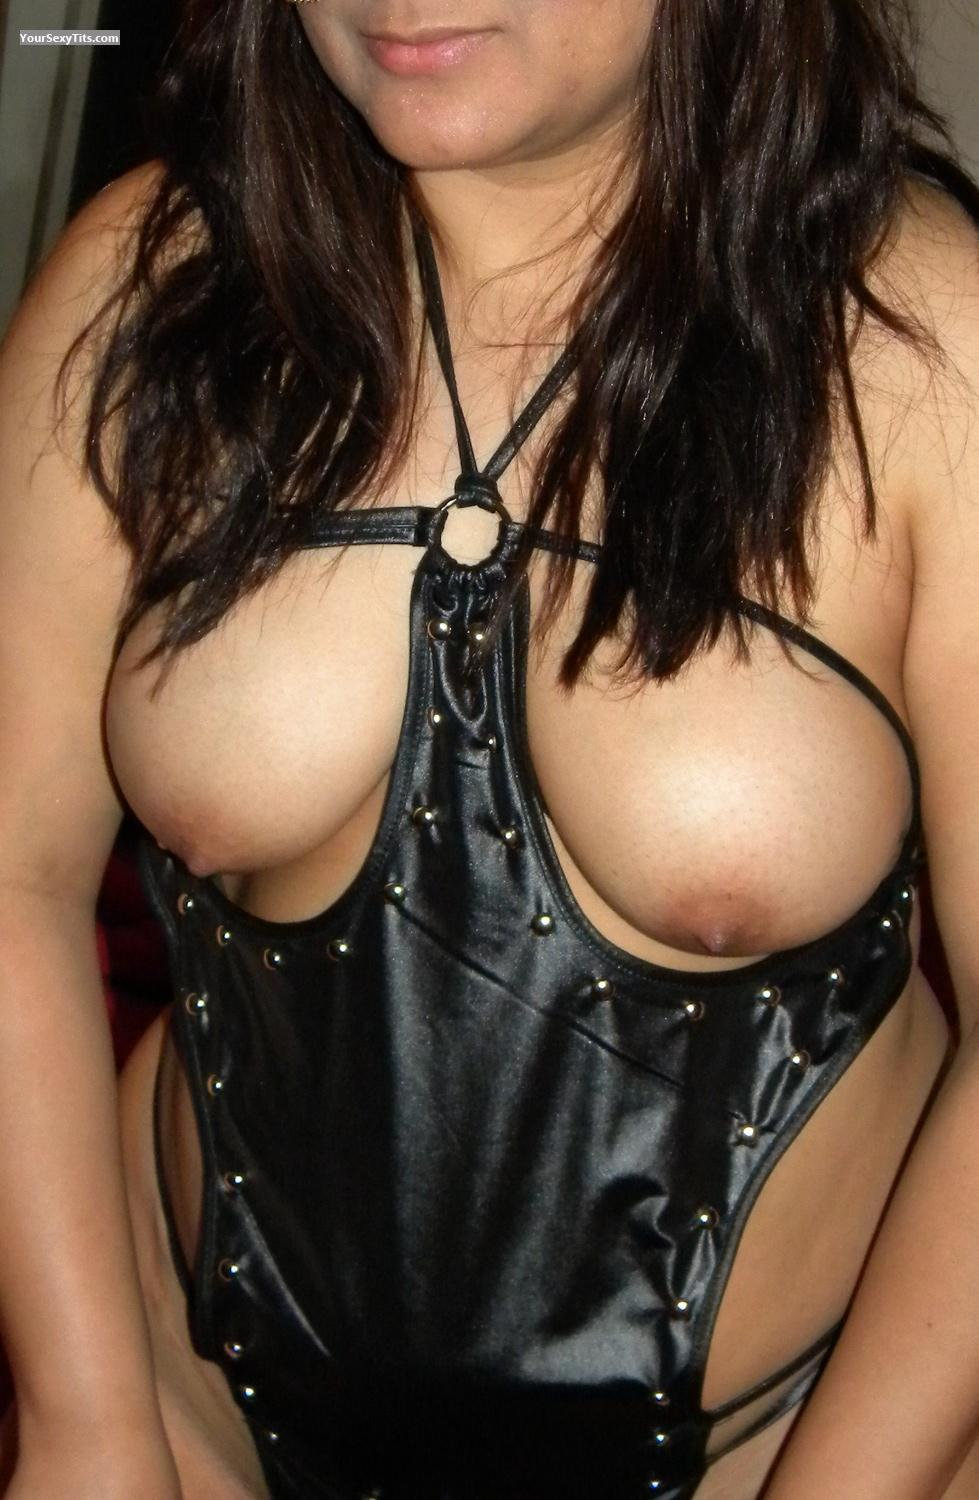 Medium Tits Latina81